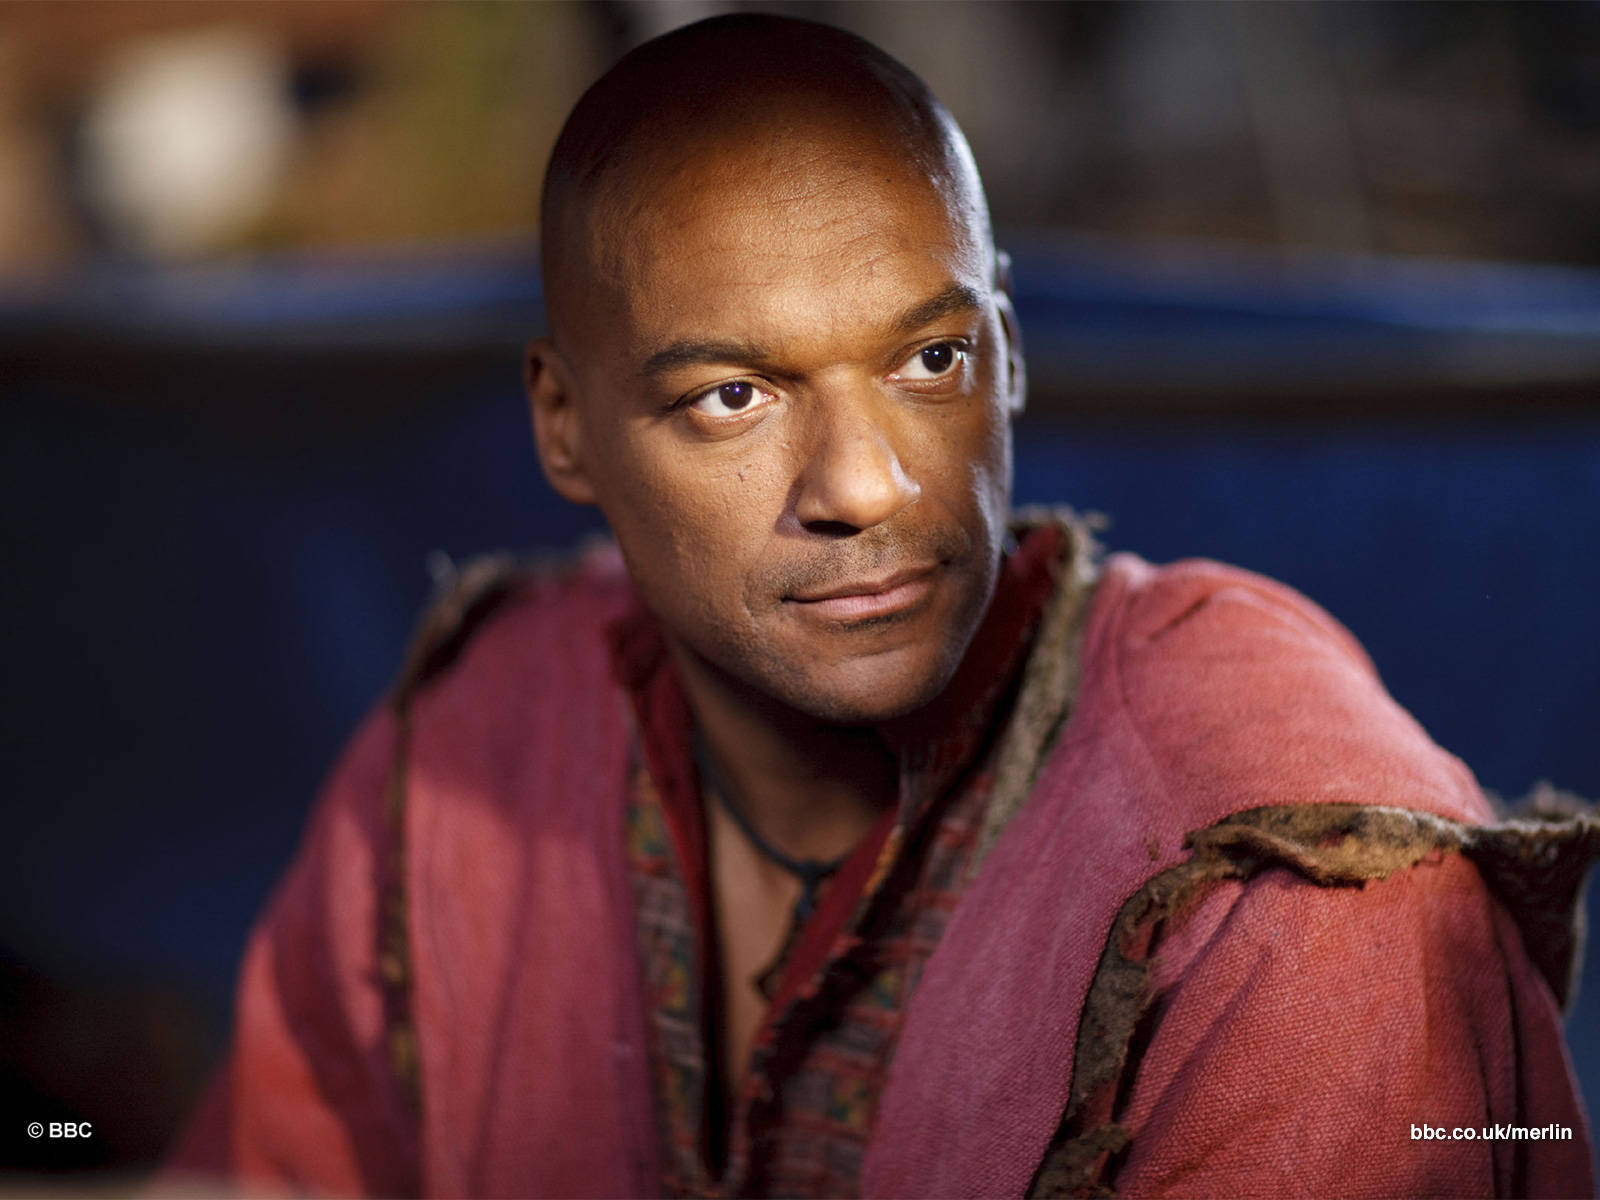 Doctor Who/Merlin Actor Crossovers